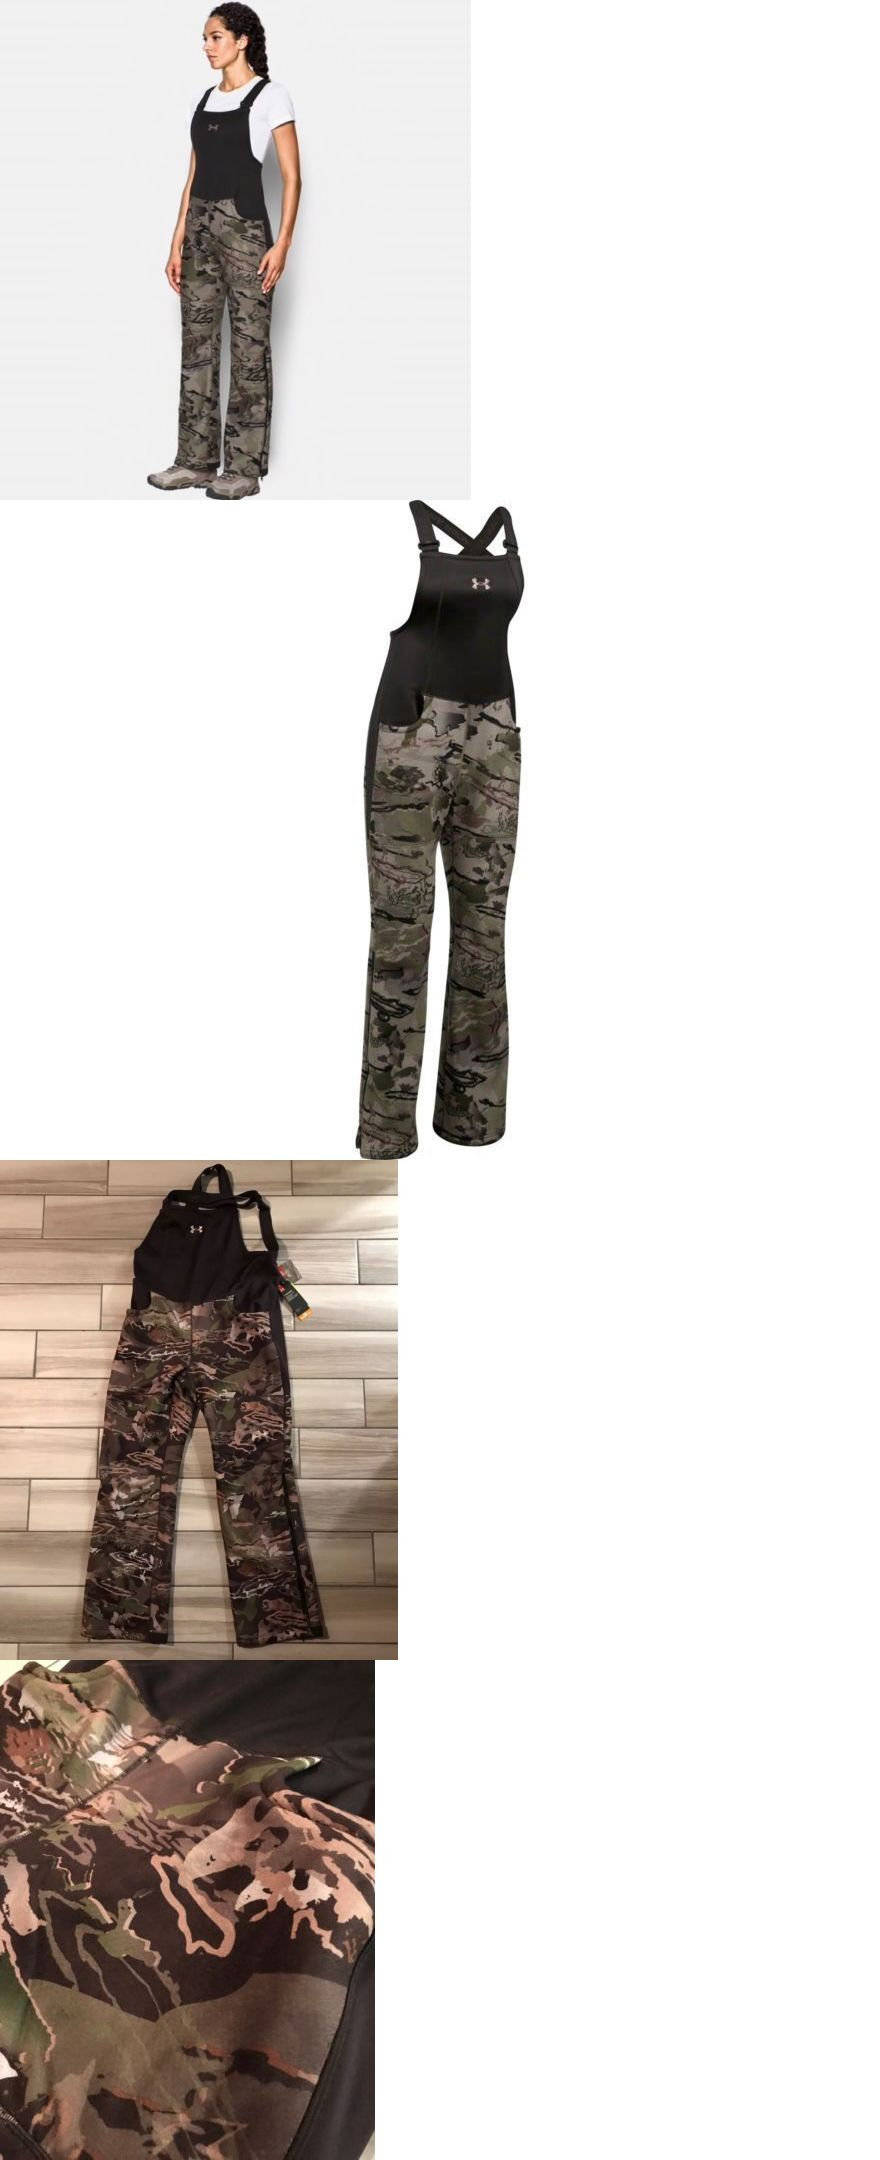 565ea1fa9d9f5 Clothing Shoes and Accessories 36239: Under Armour Hunting Bib Women Size  Large Mid Season Ua Camo Ridge Reaper Forest -> BUY IT NOW ONLY: $62.95 on  #eBay ...